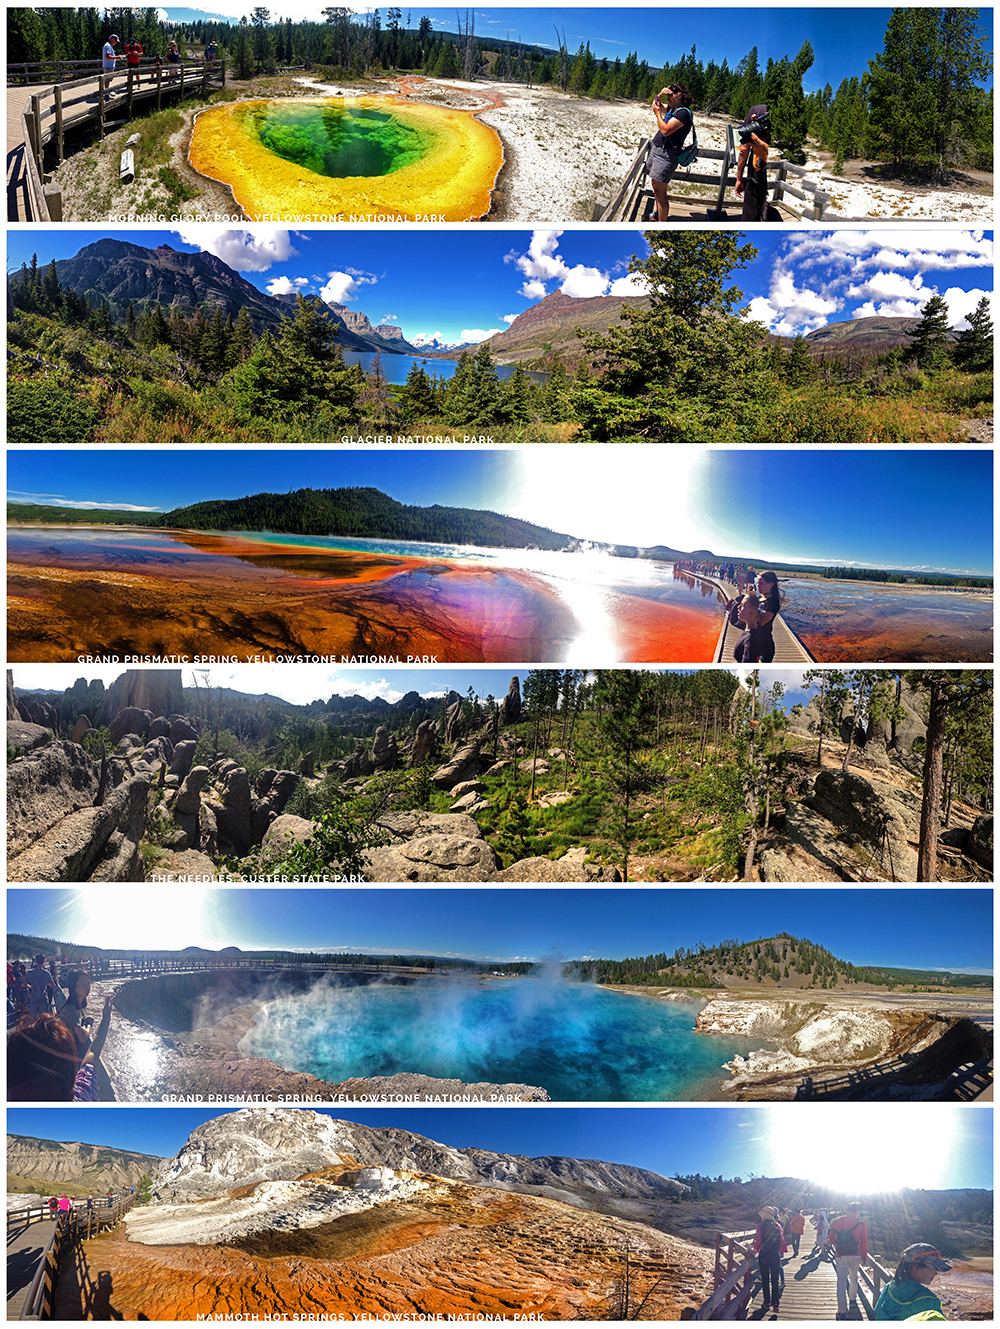 American Southwest 2016 Panorama Poster_03_02